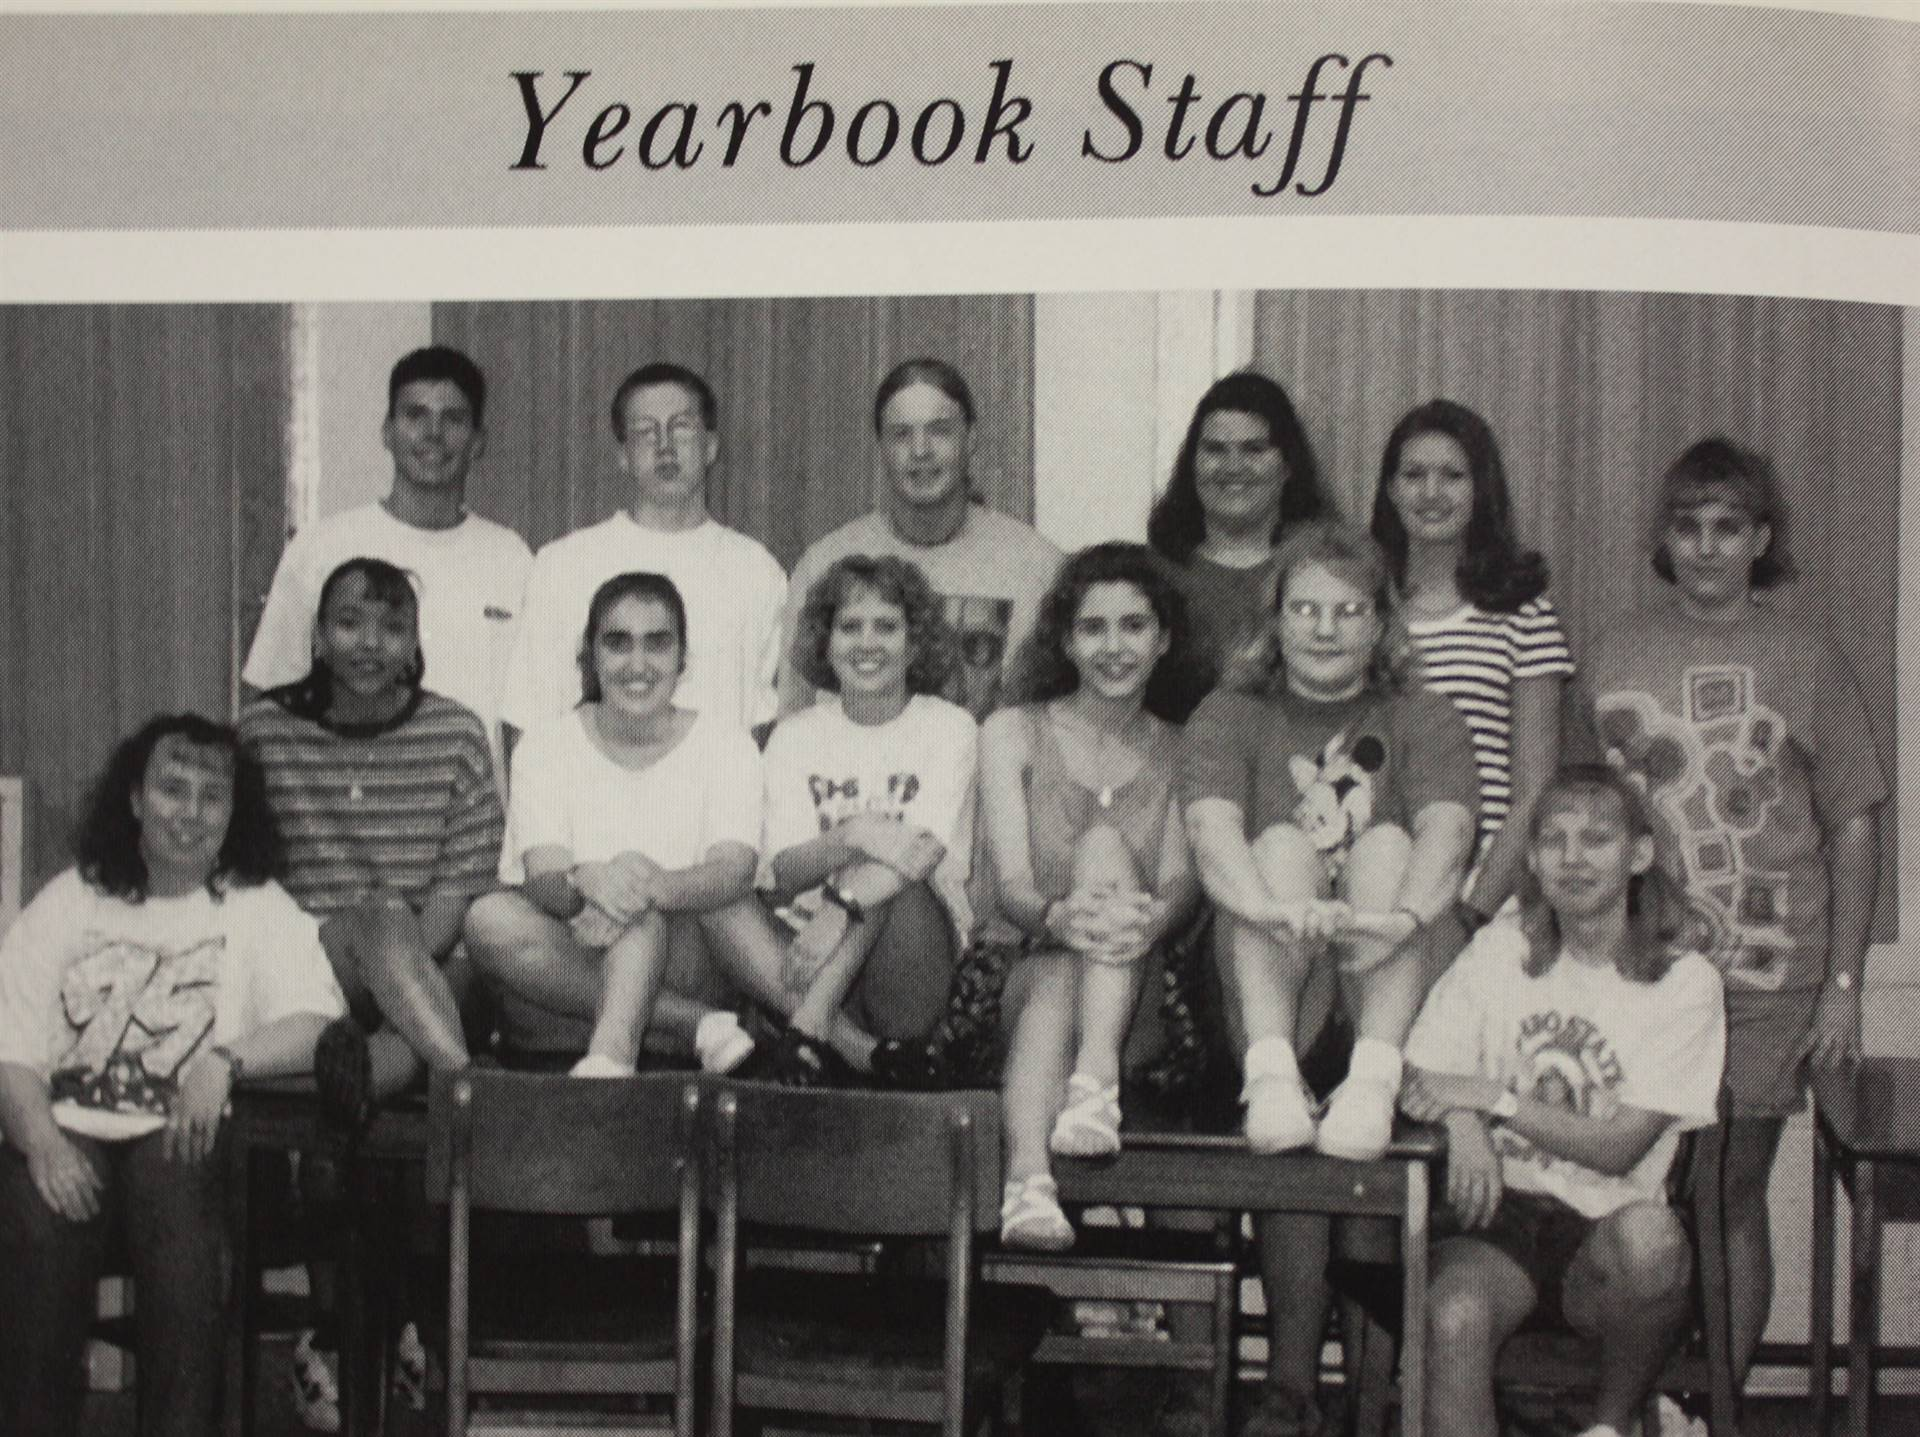 1995 Yearbook Staff